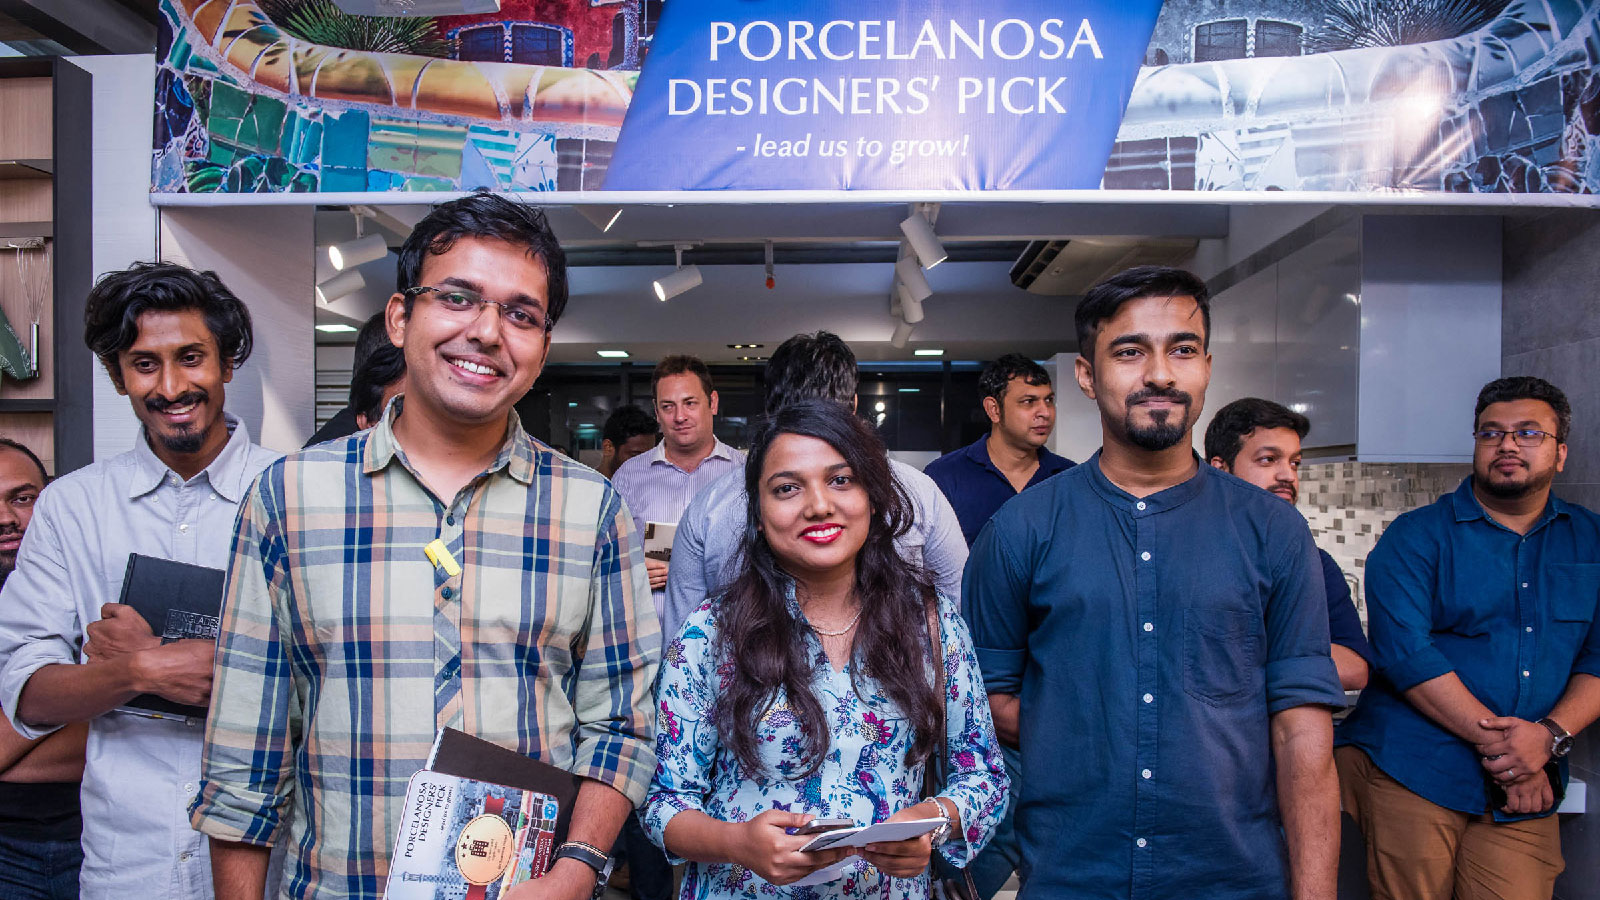 PORCELANOSA Grupo launched Bangladesh Builders Catalogue at Porcelanosa Designers' Pick